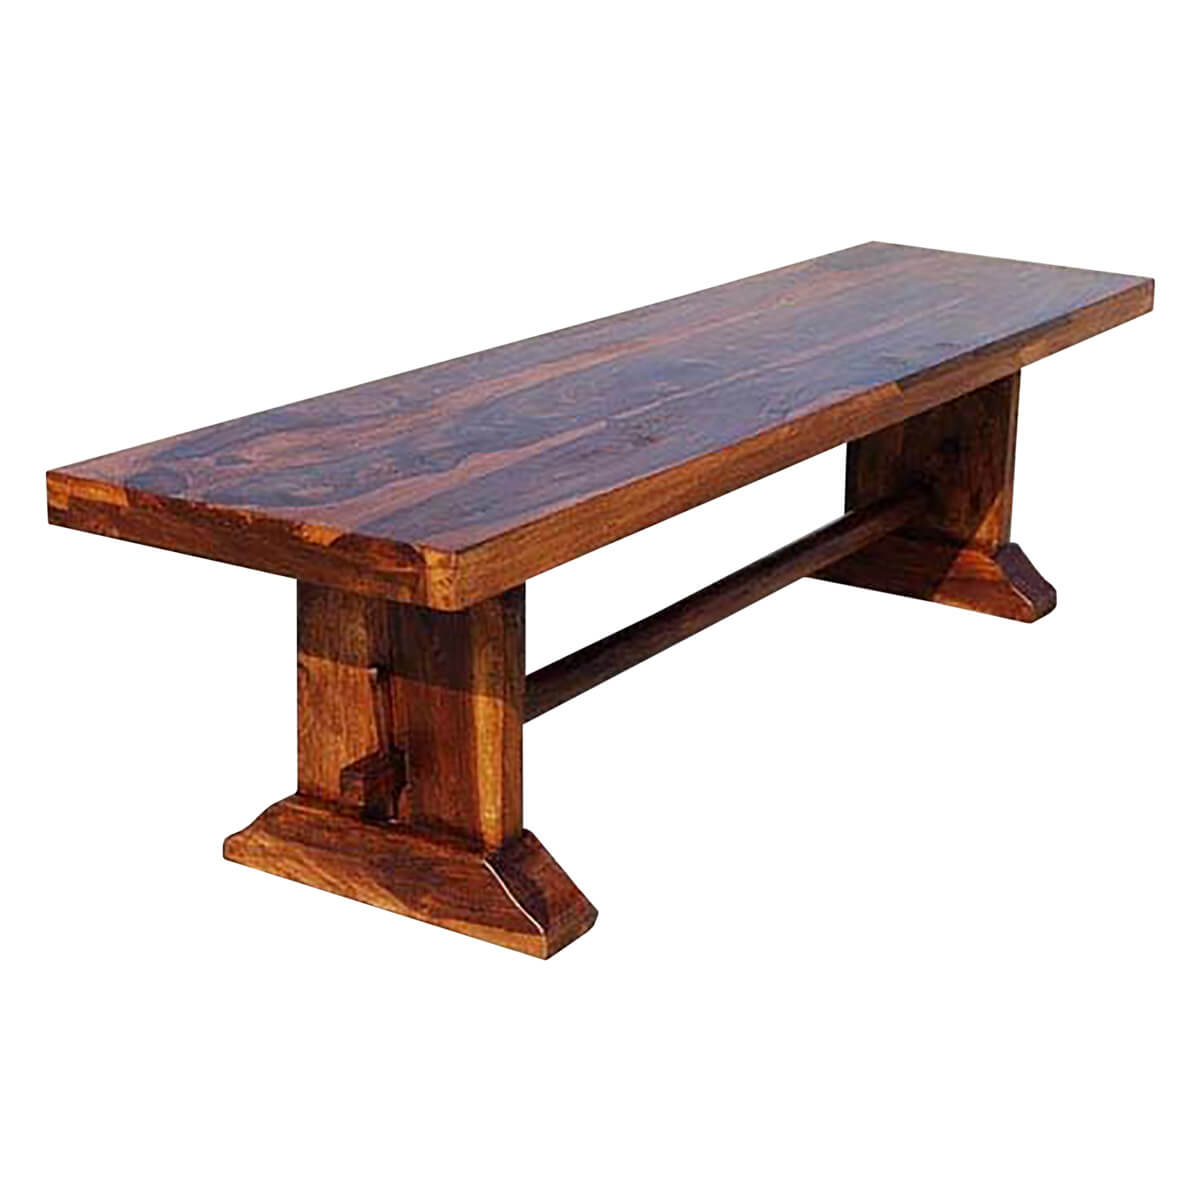 Louvre rustic solid wood indoor wooden bench Furniture benches